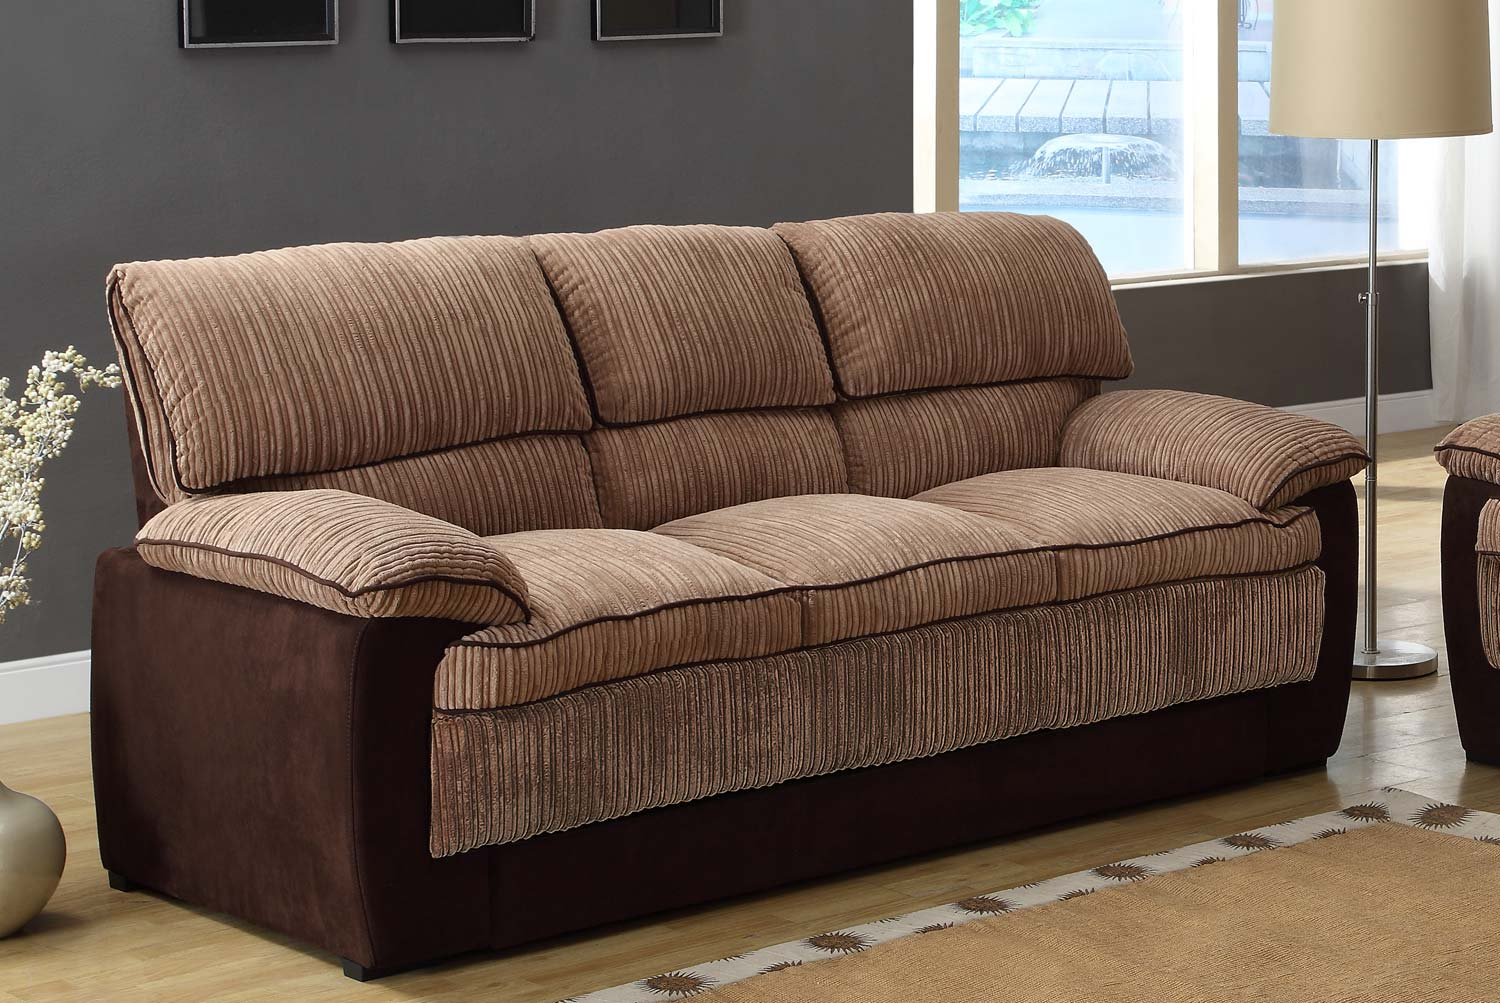 Brown Corduroy Couch Of Homelegance Mccollum Sofa Set Brown Corduroy And